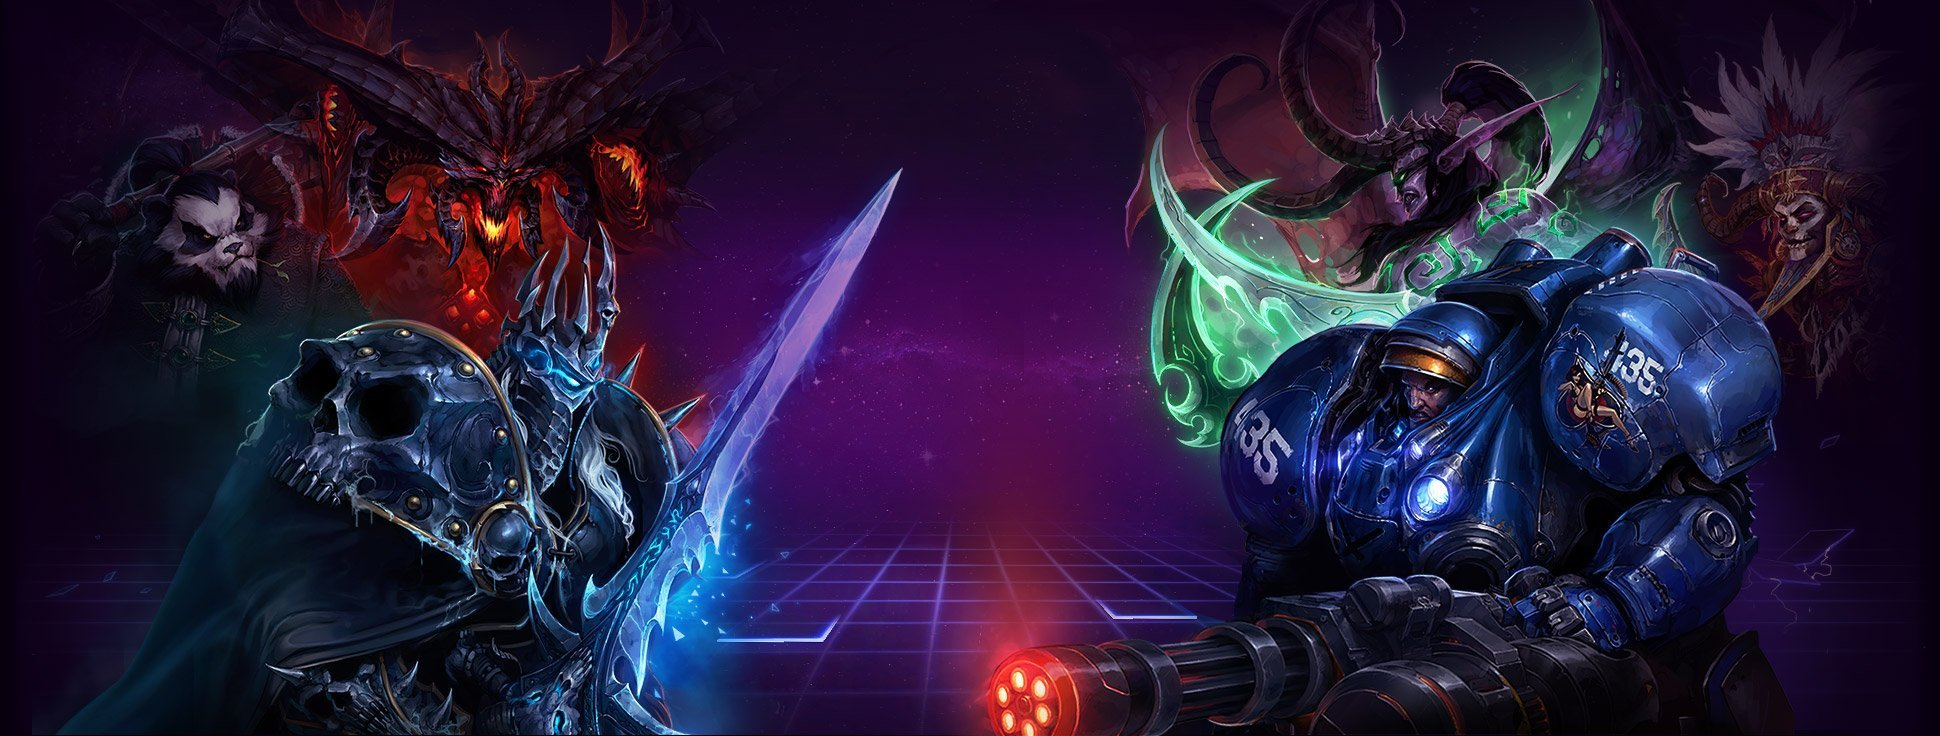 Heroes of the Storm Wide